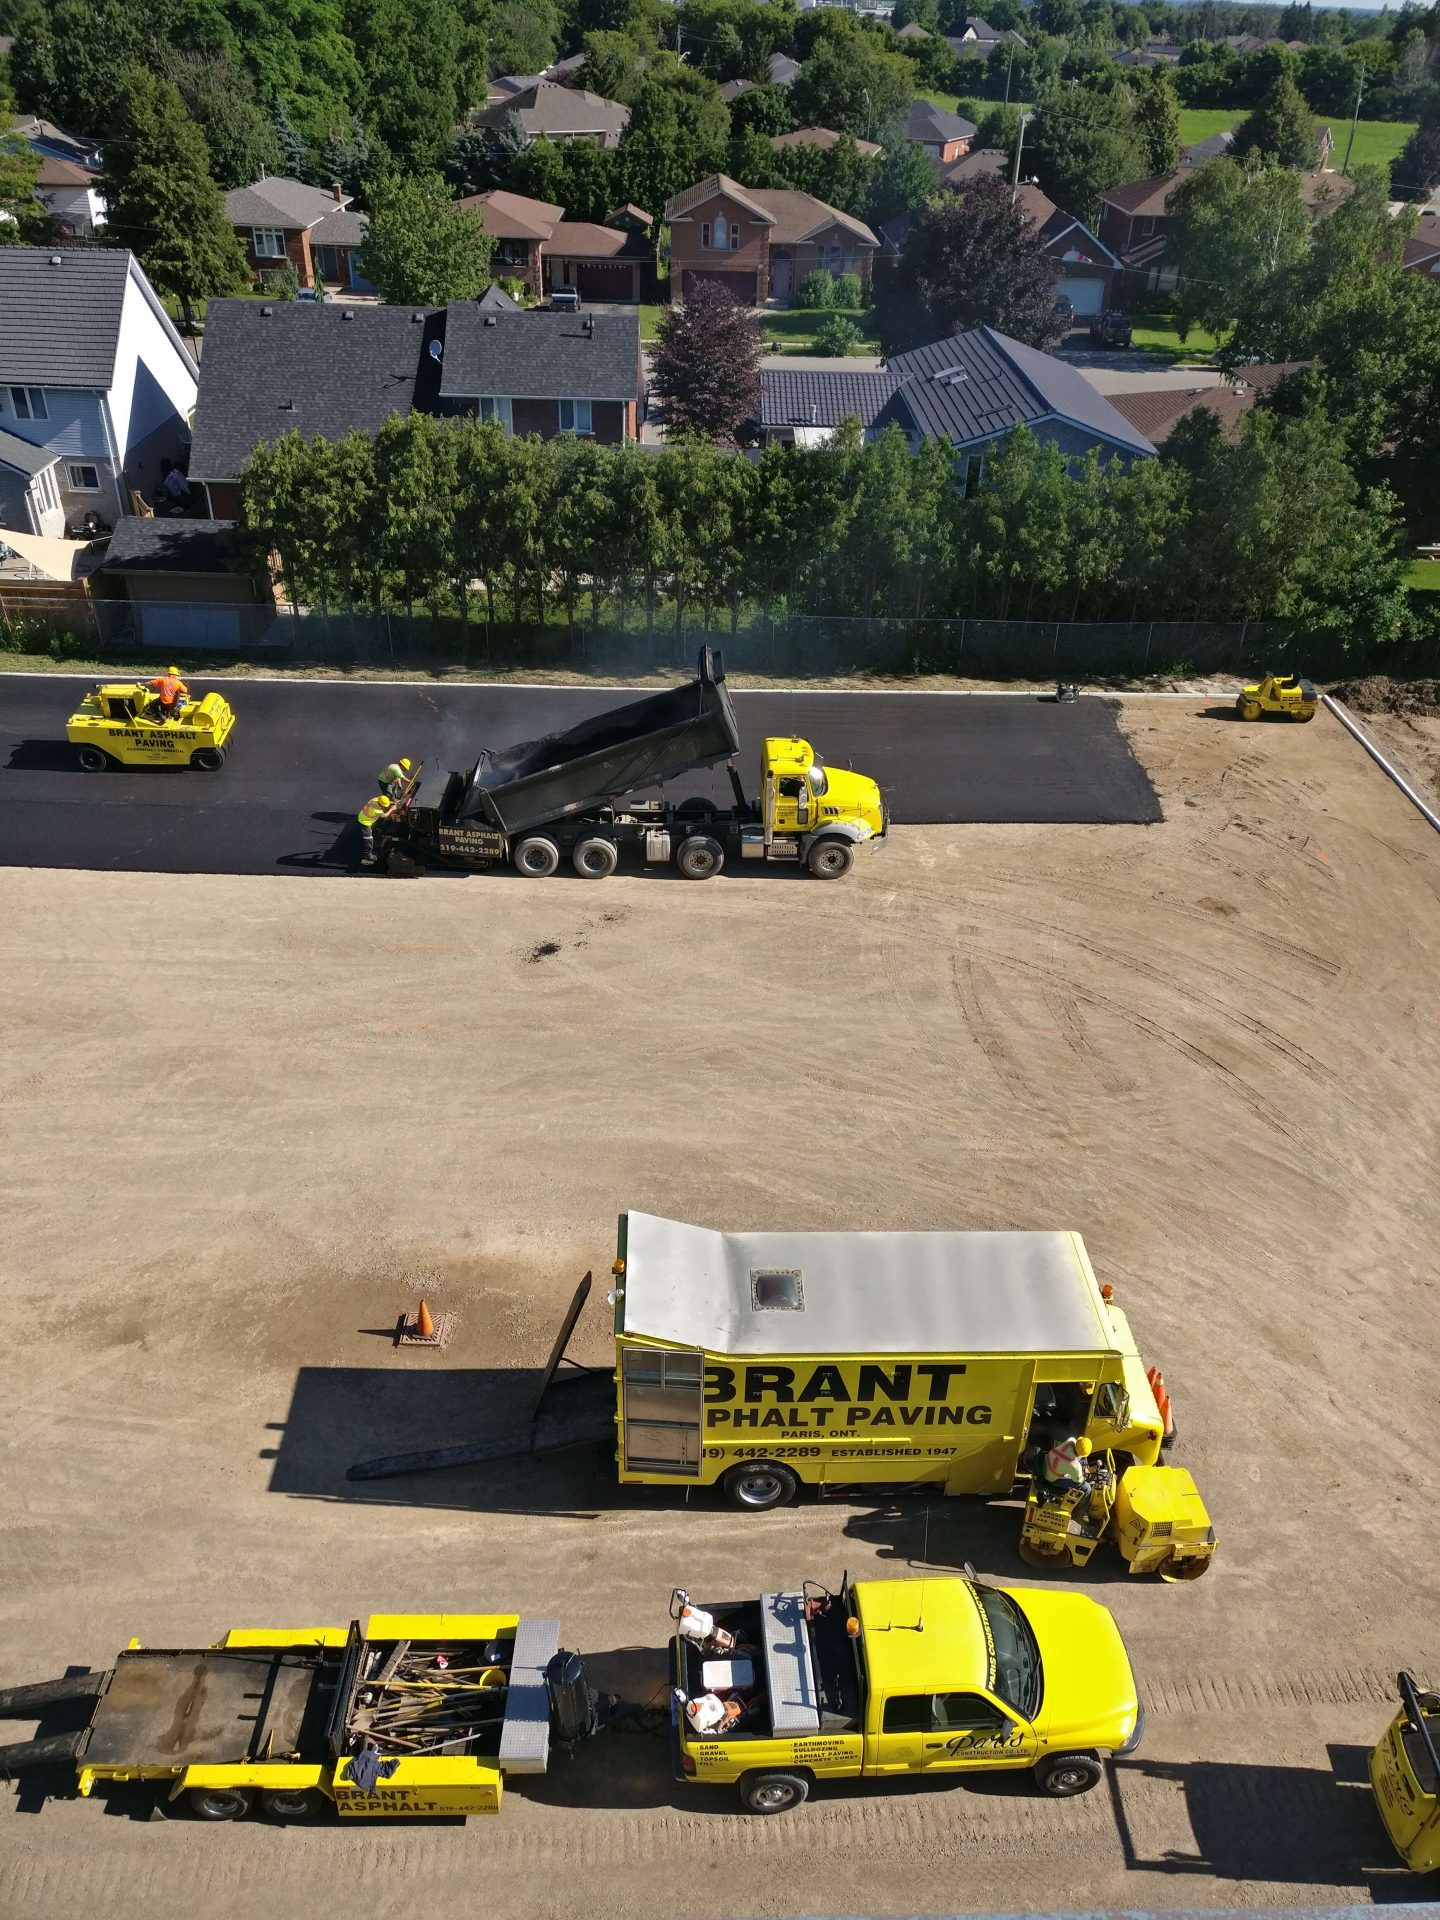 Paris Construction trucks on new parking lot